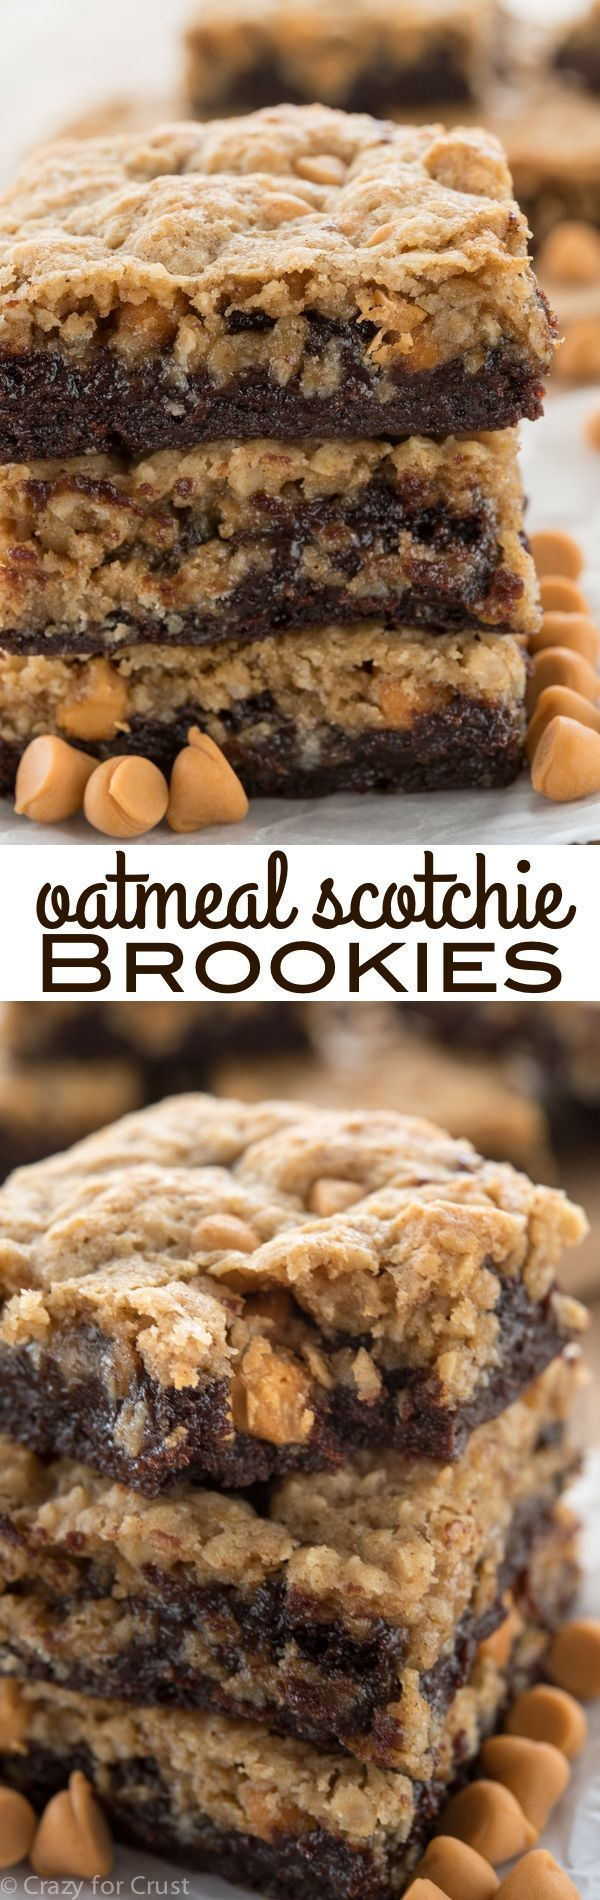 Photo of Oatmeal Scotchie Brookies – Crazy for Crust